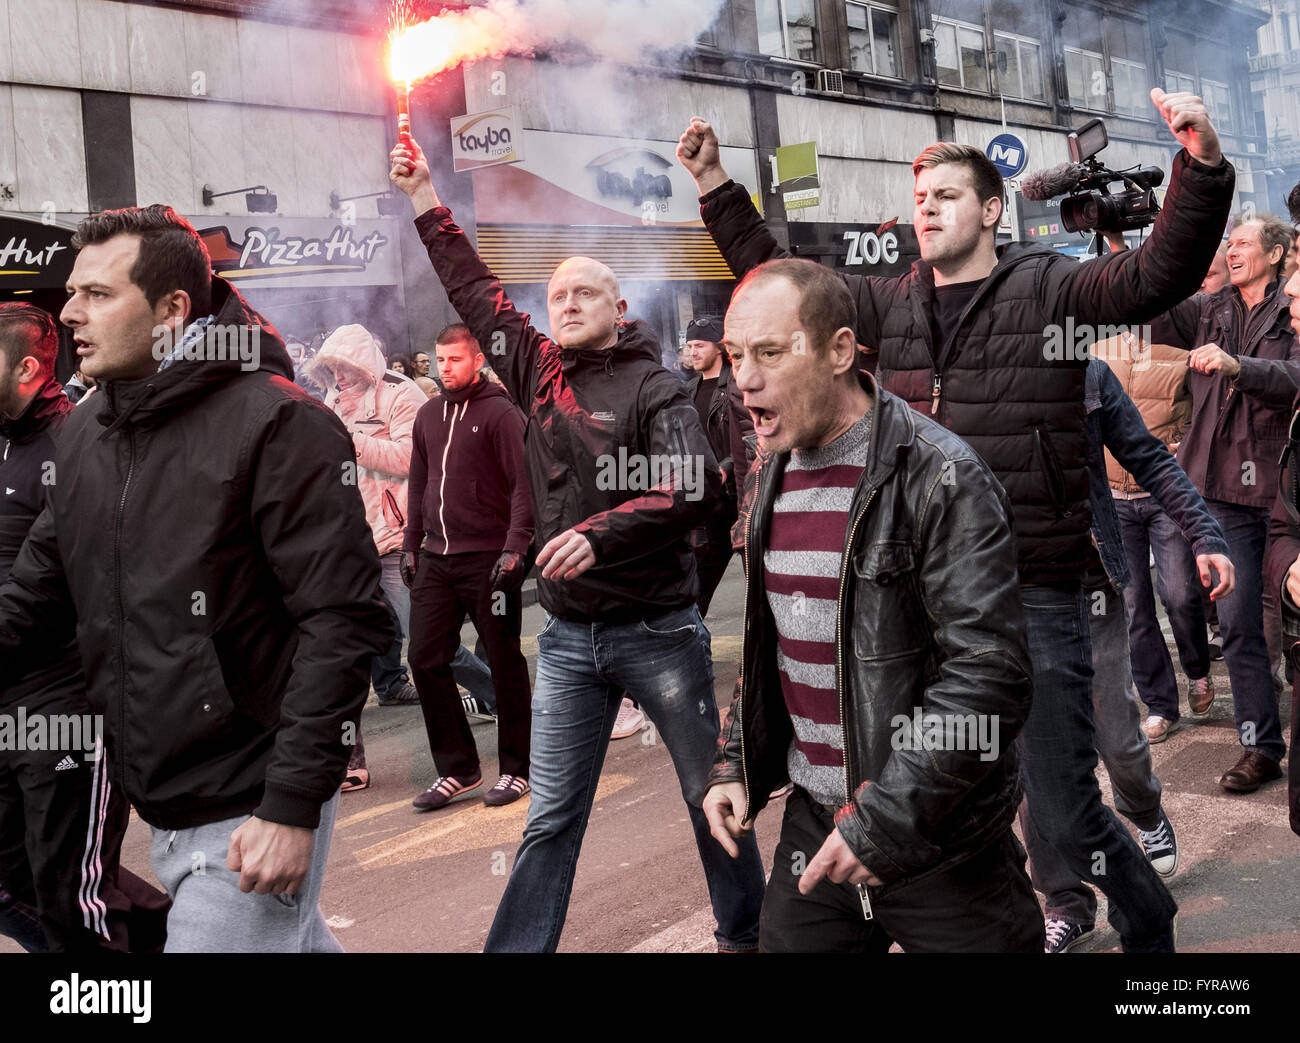 Tensions mounted in Place de la Bourse after a peaceful march was disrupted by approximately 200 far-right football - Stock Image